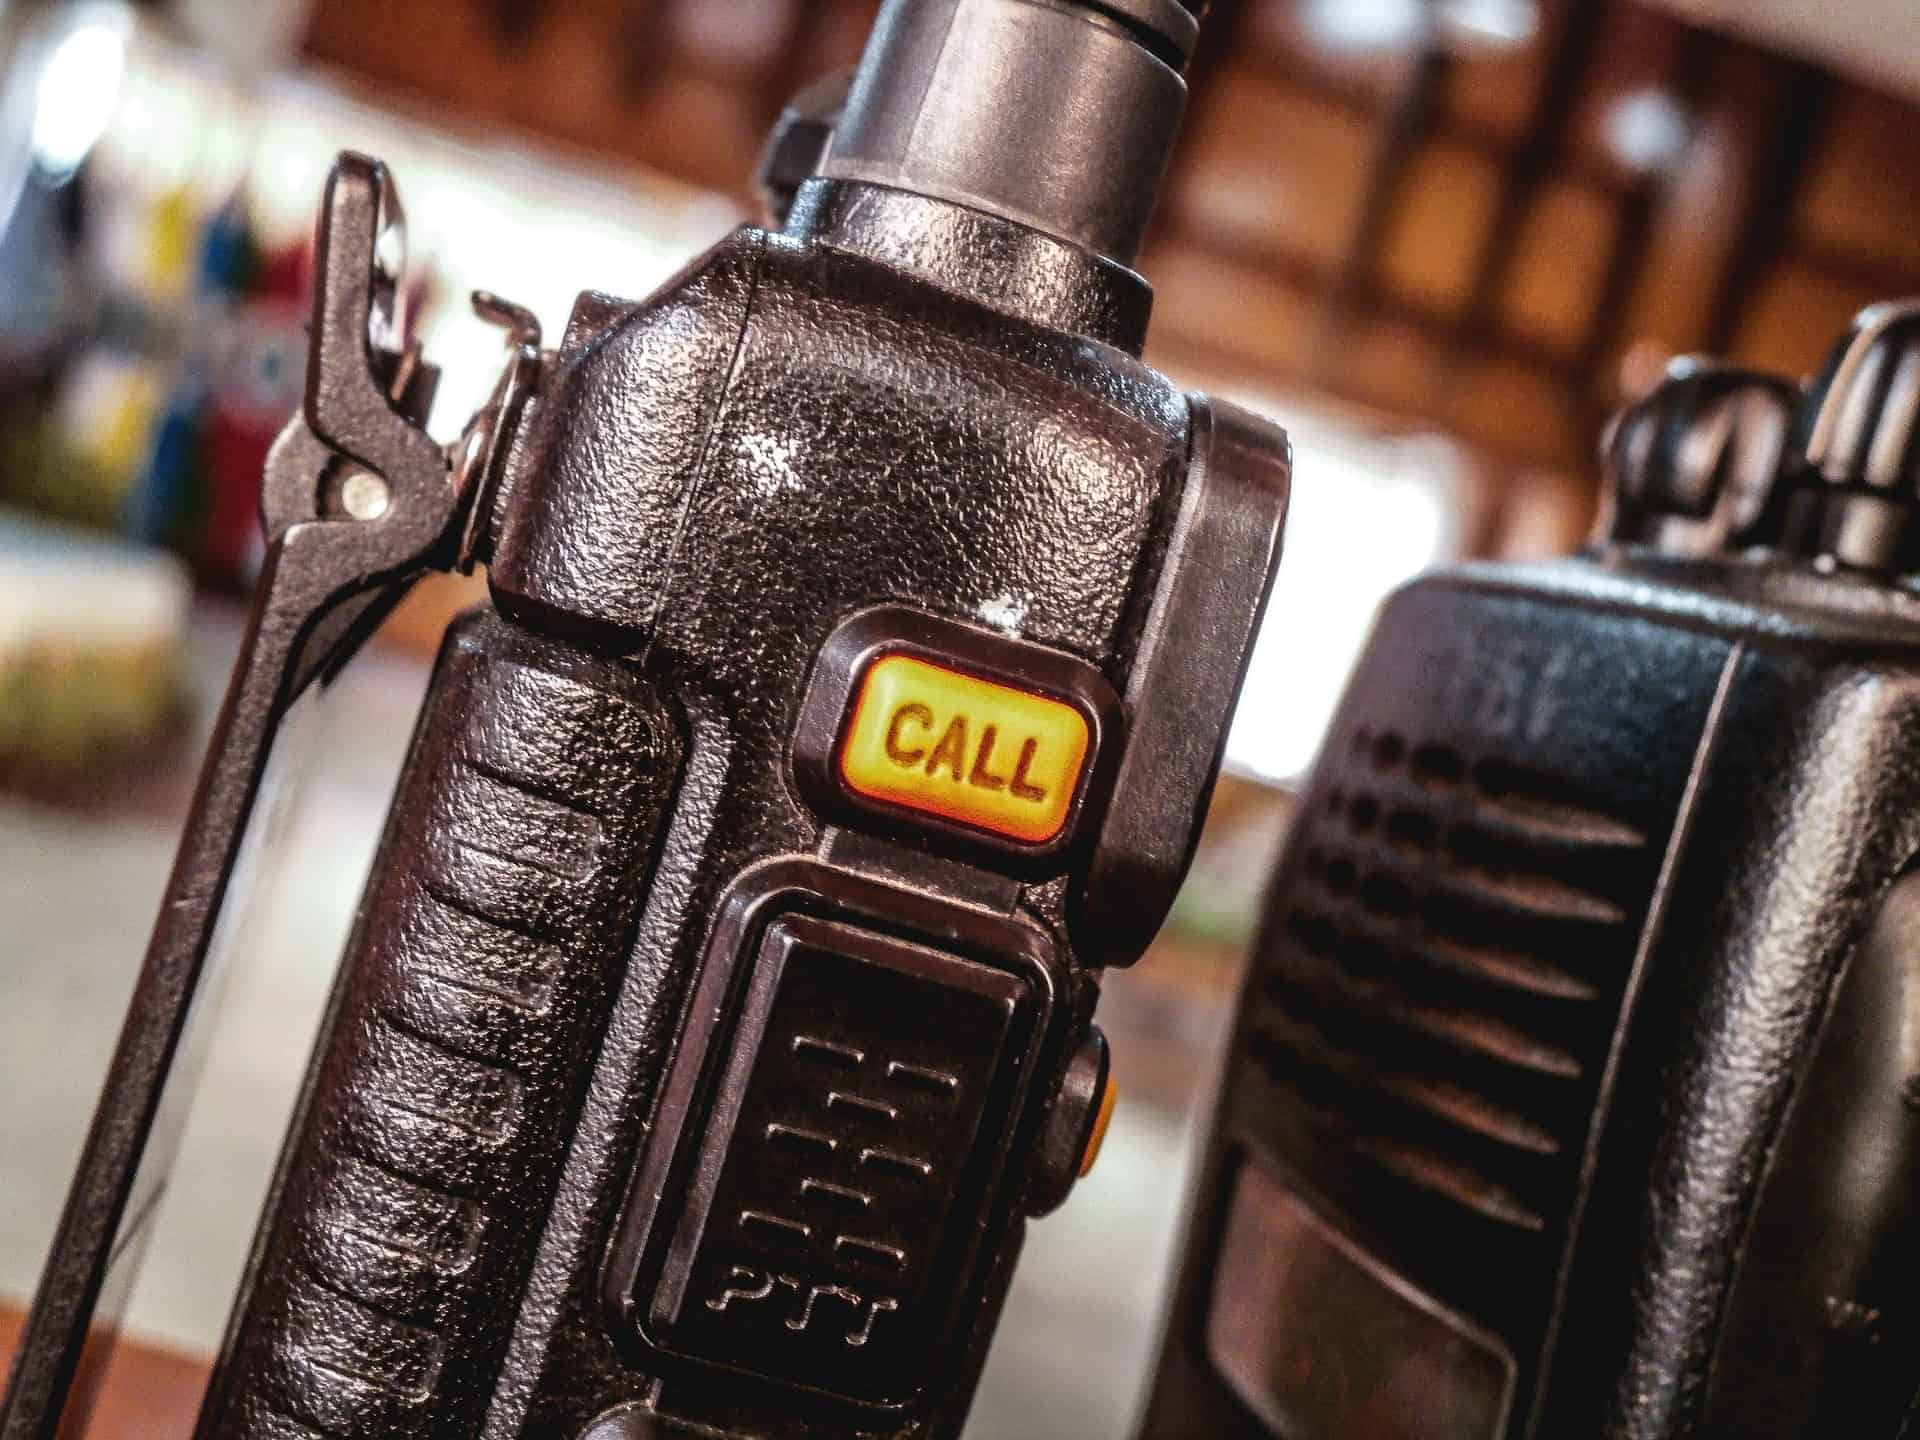 Close-up image of radio communicators.